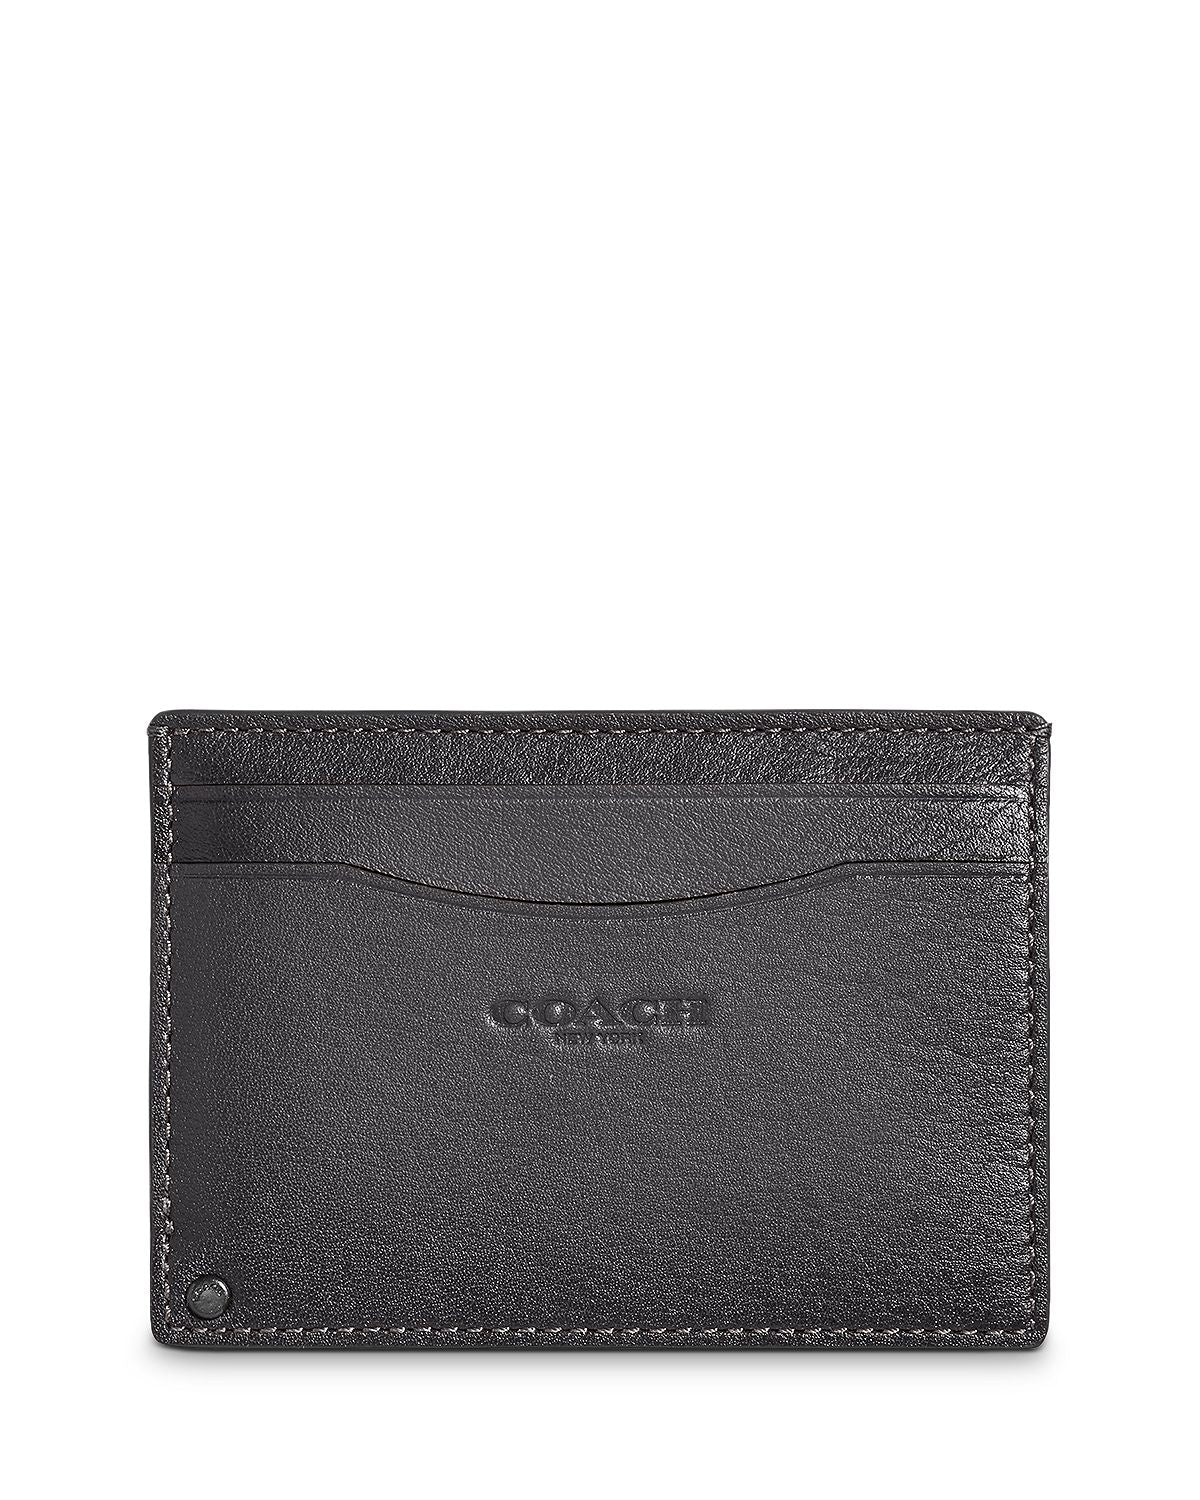 Coach Leather Swivel Card Case Gray/Silver